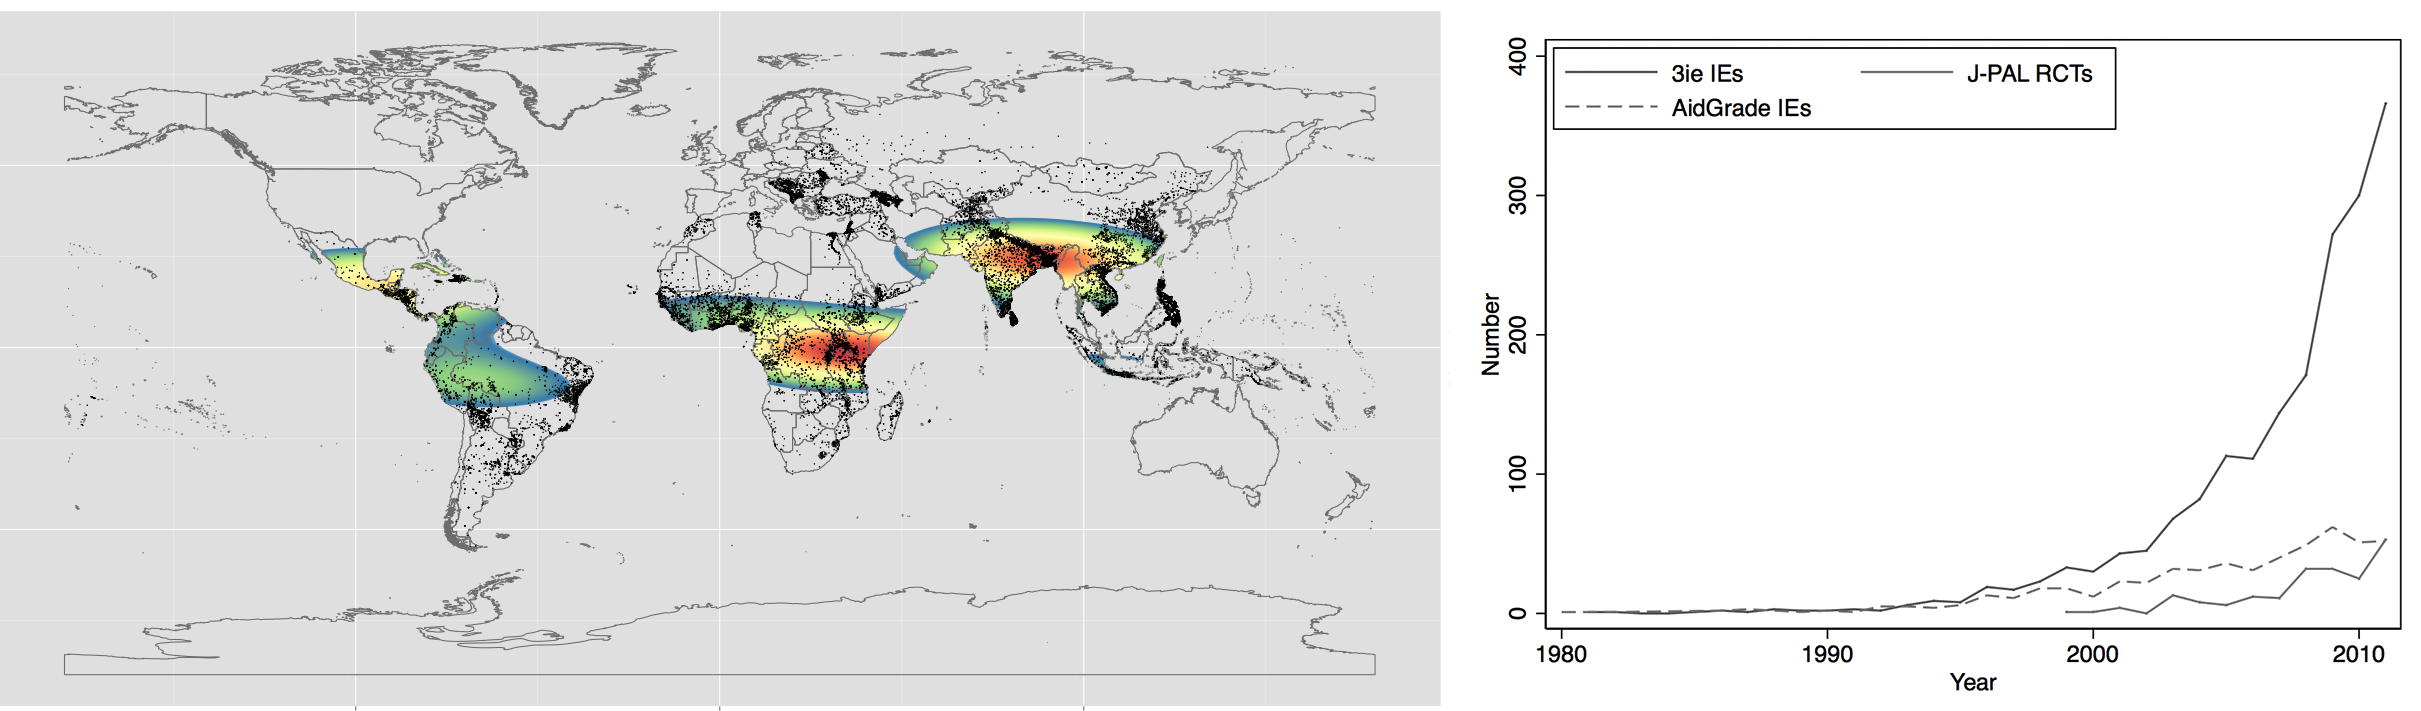 Figure 1: Growth of Impact Evaluations and Location Relative to Programs The figure on the left shows a heat map of the impact evaluations in AidGrade s database overlaid by black dots indicating